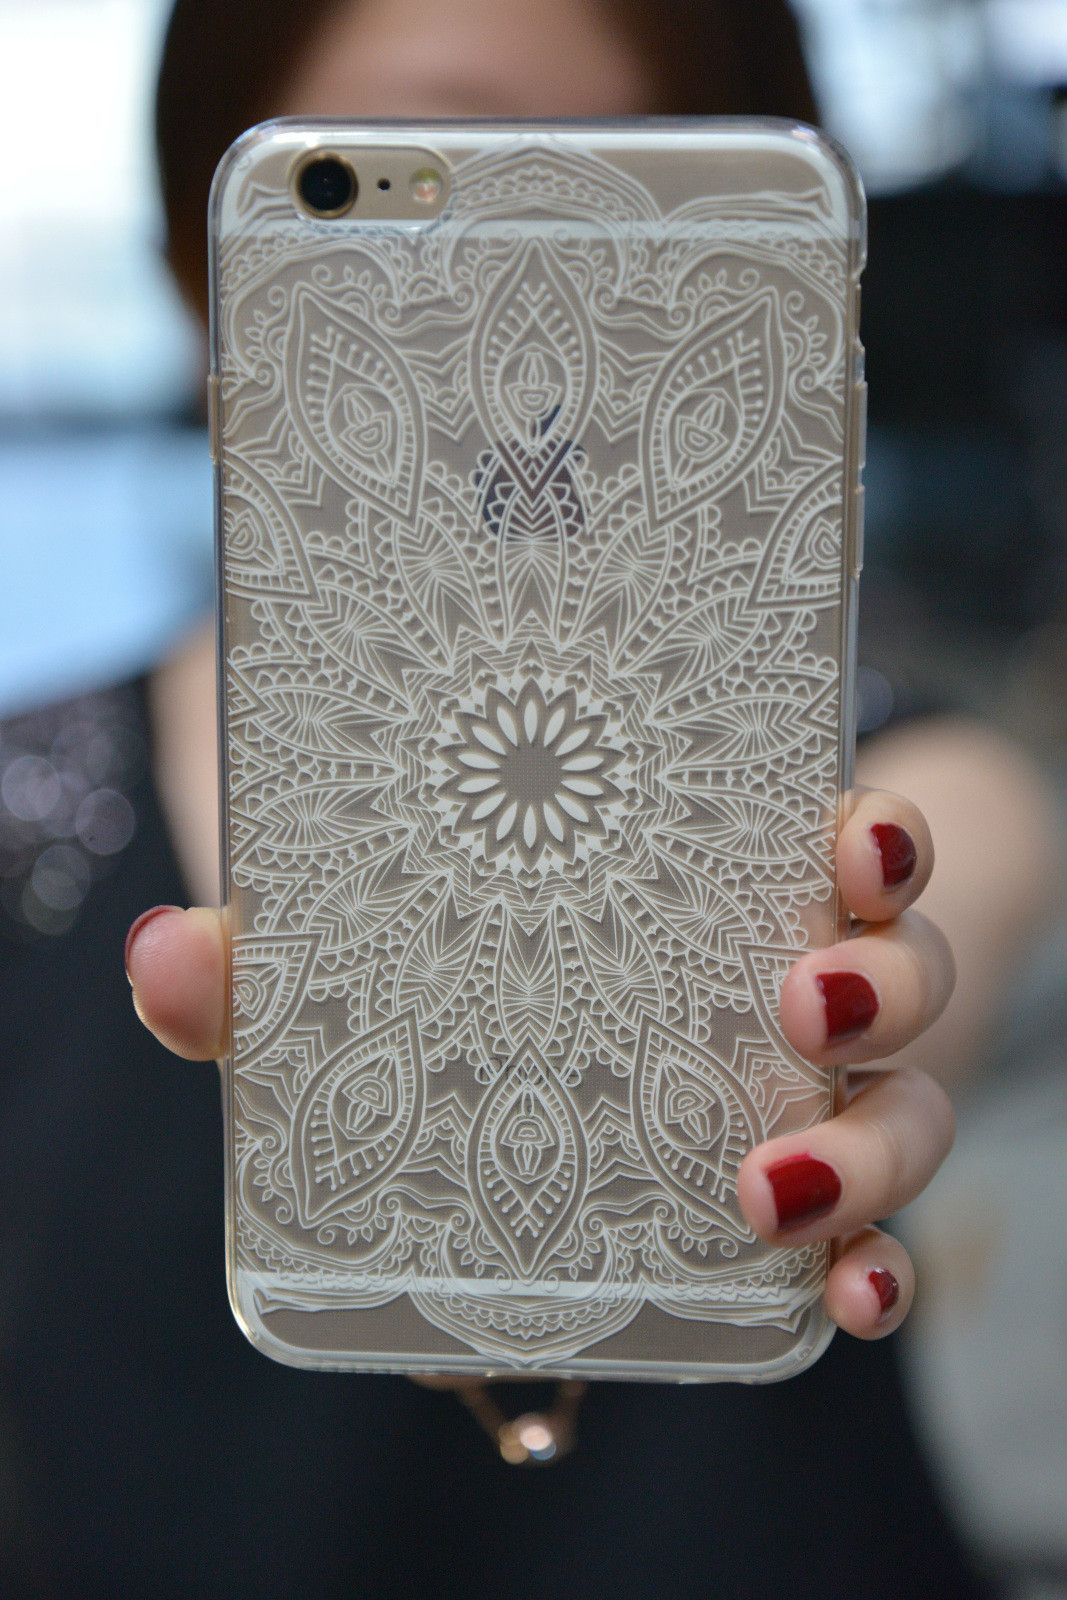 Mandala Clear Case for iPhone 6S/ 6S Plus | Iphone 6s case, Case ...